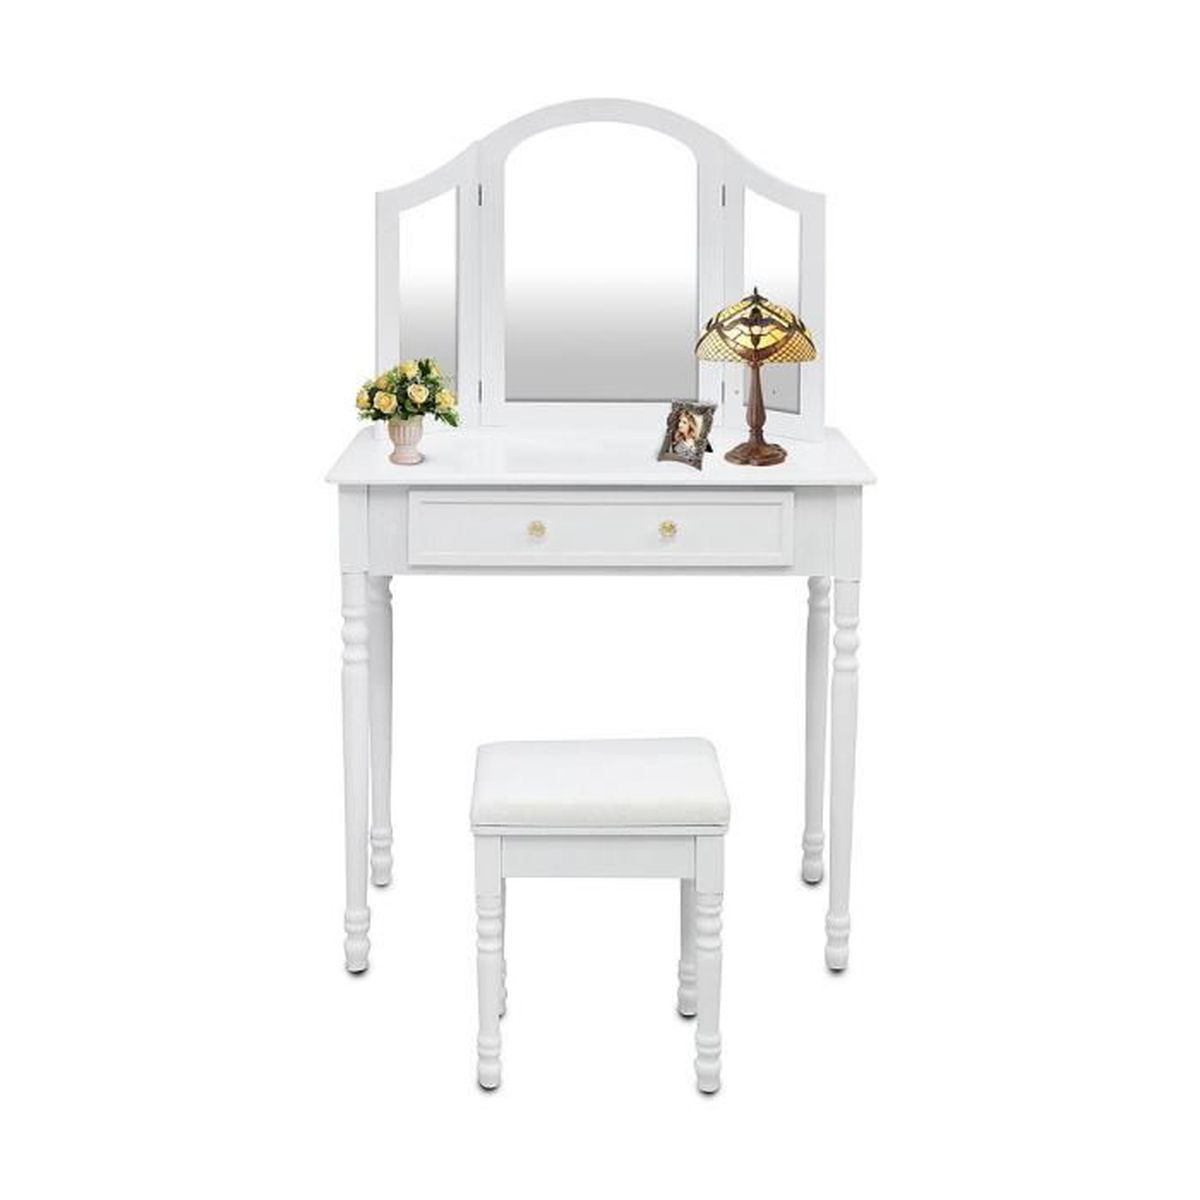 table de maquillage coiffeuse avec miroir et tabouret couleur blanche achat vente. Black Bedroom Furniture Sets. Home Design Ideas